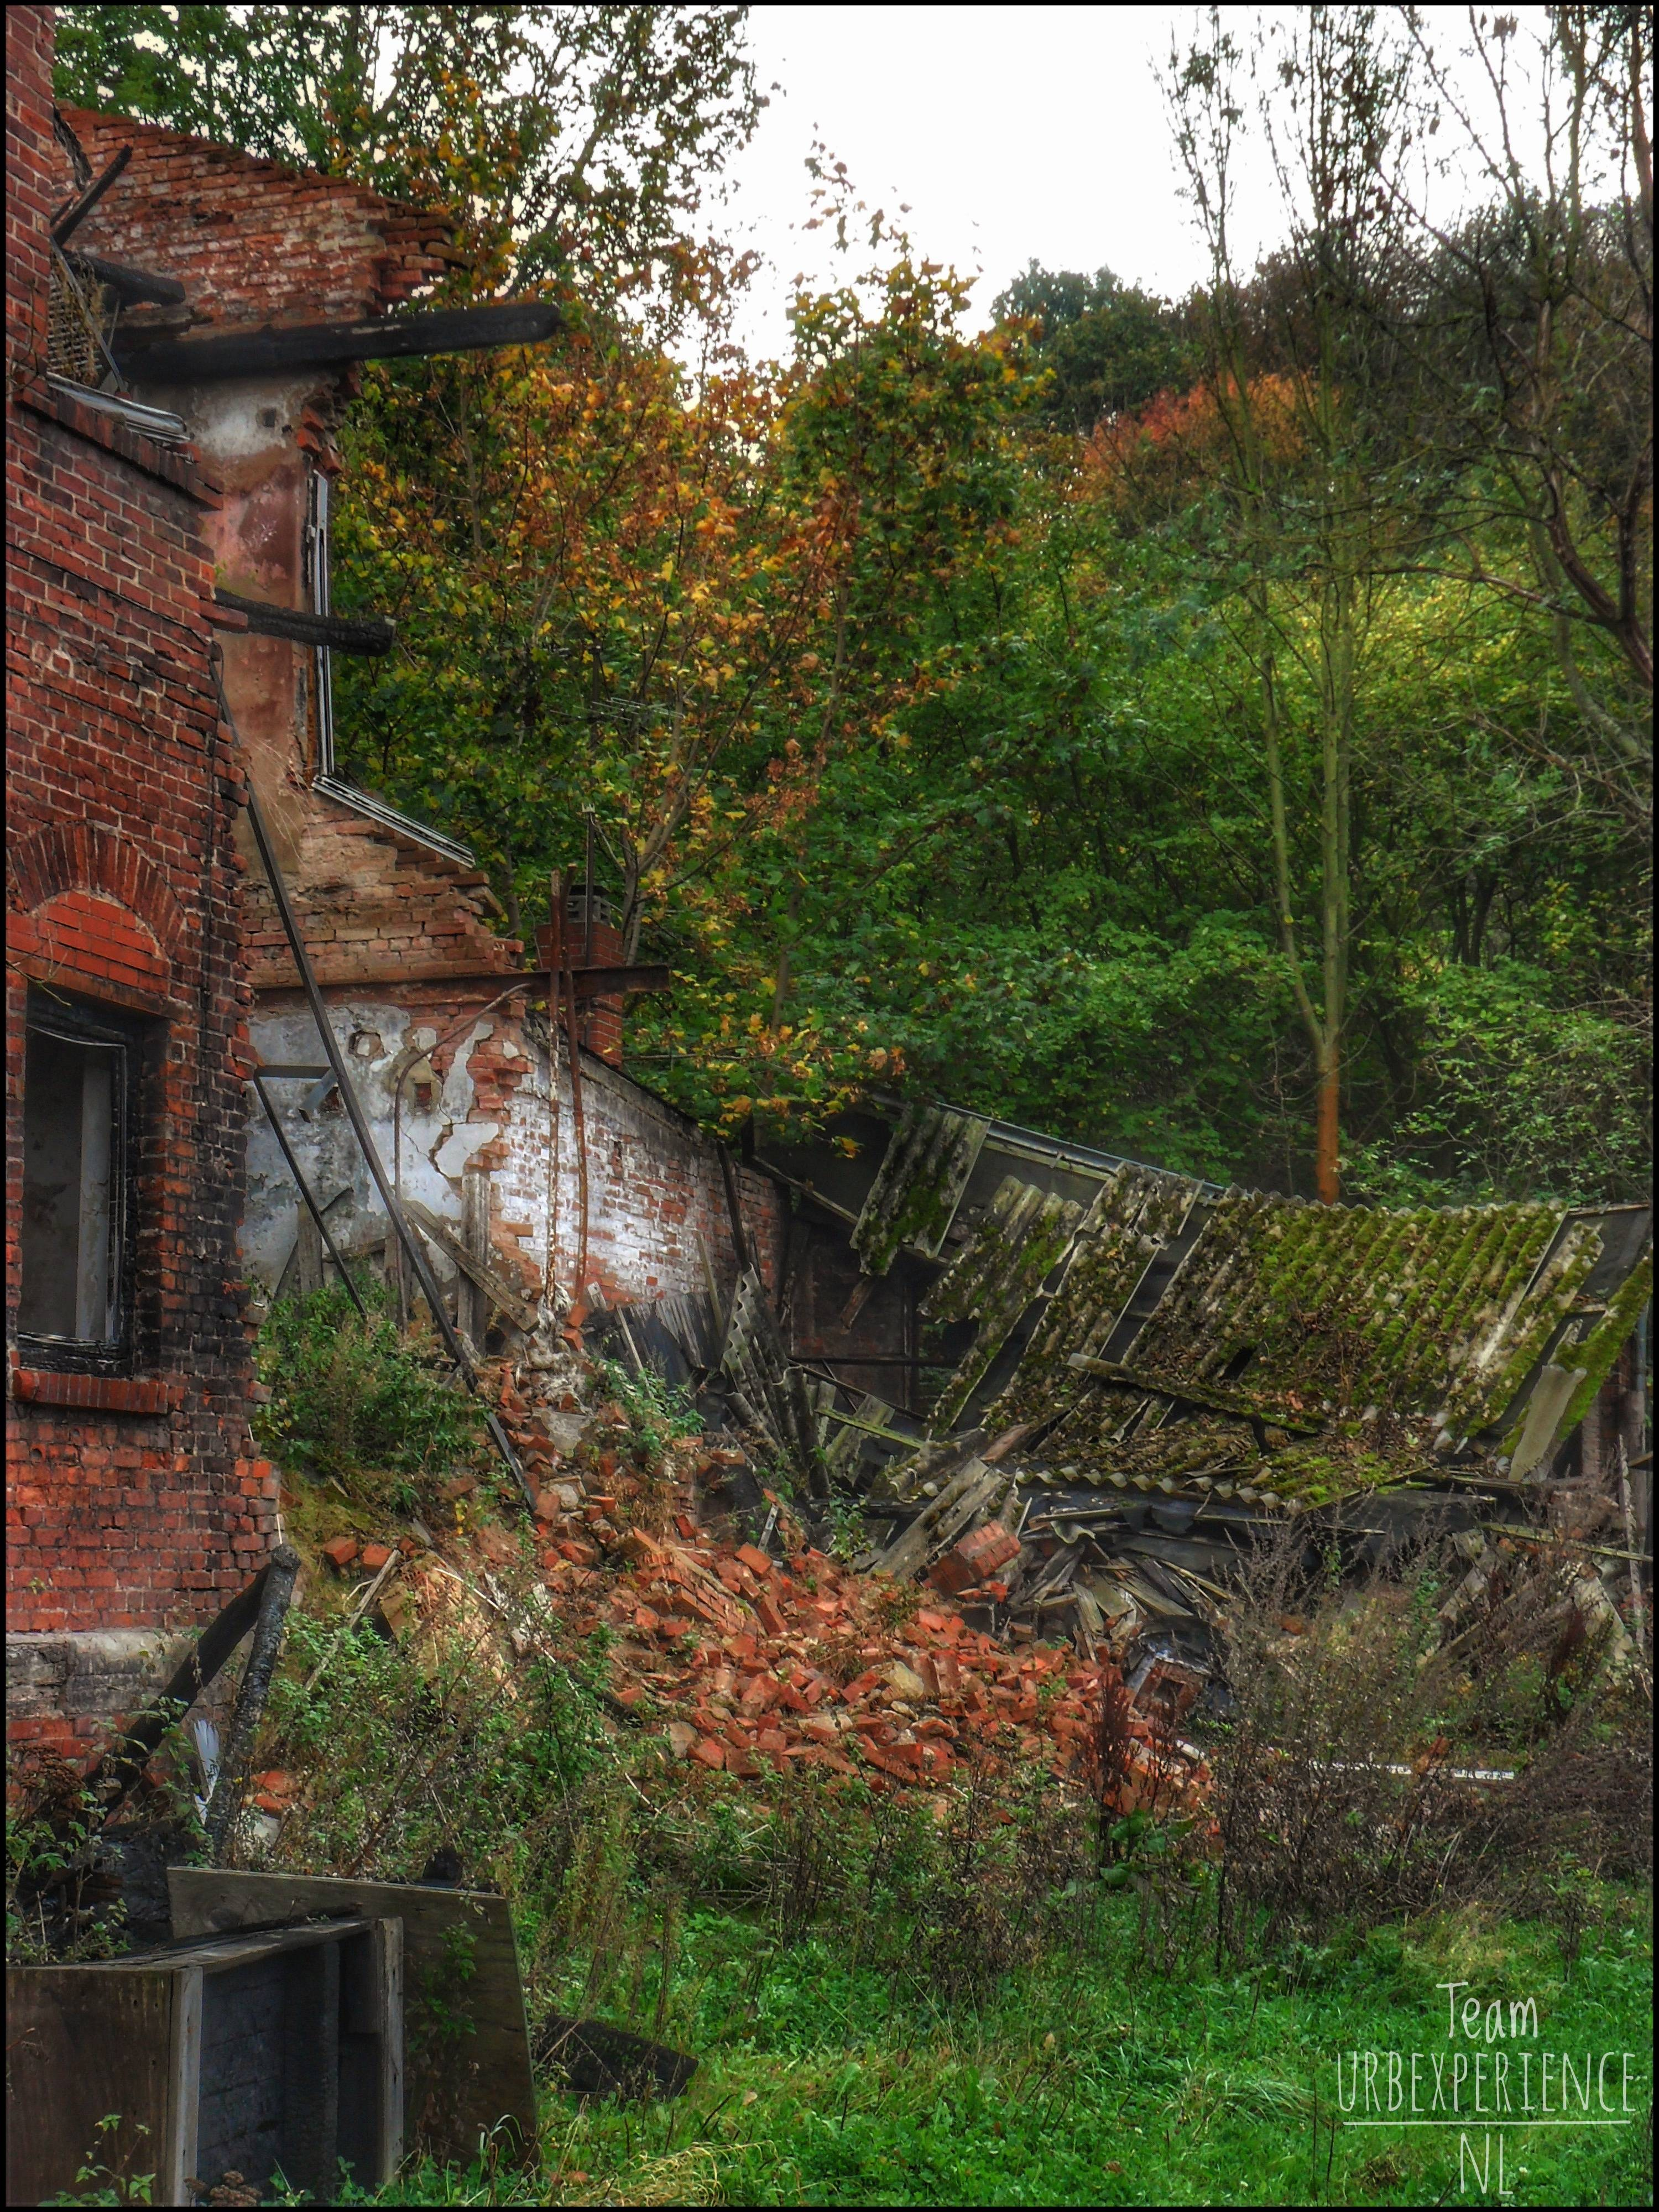 House in decay